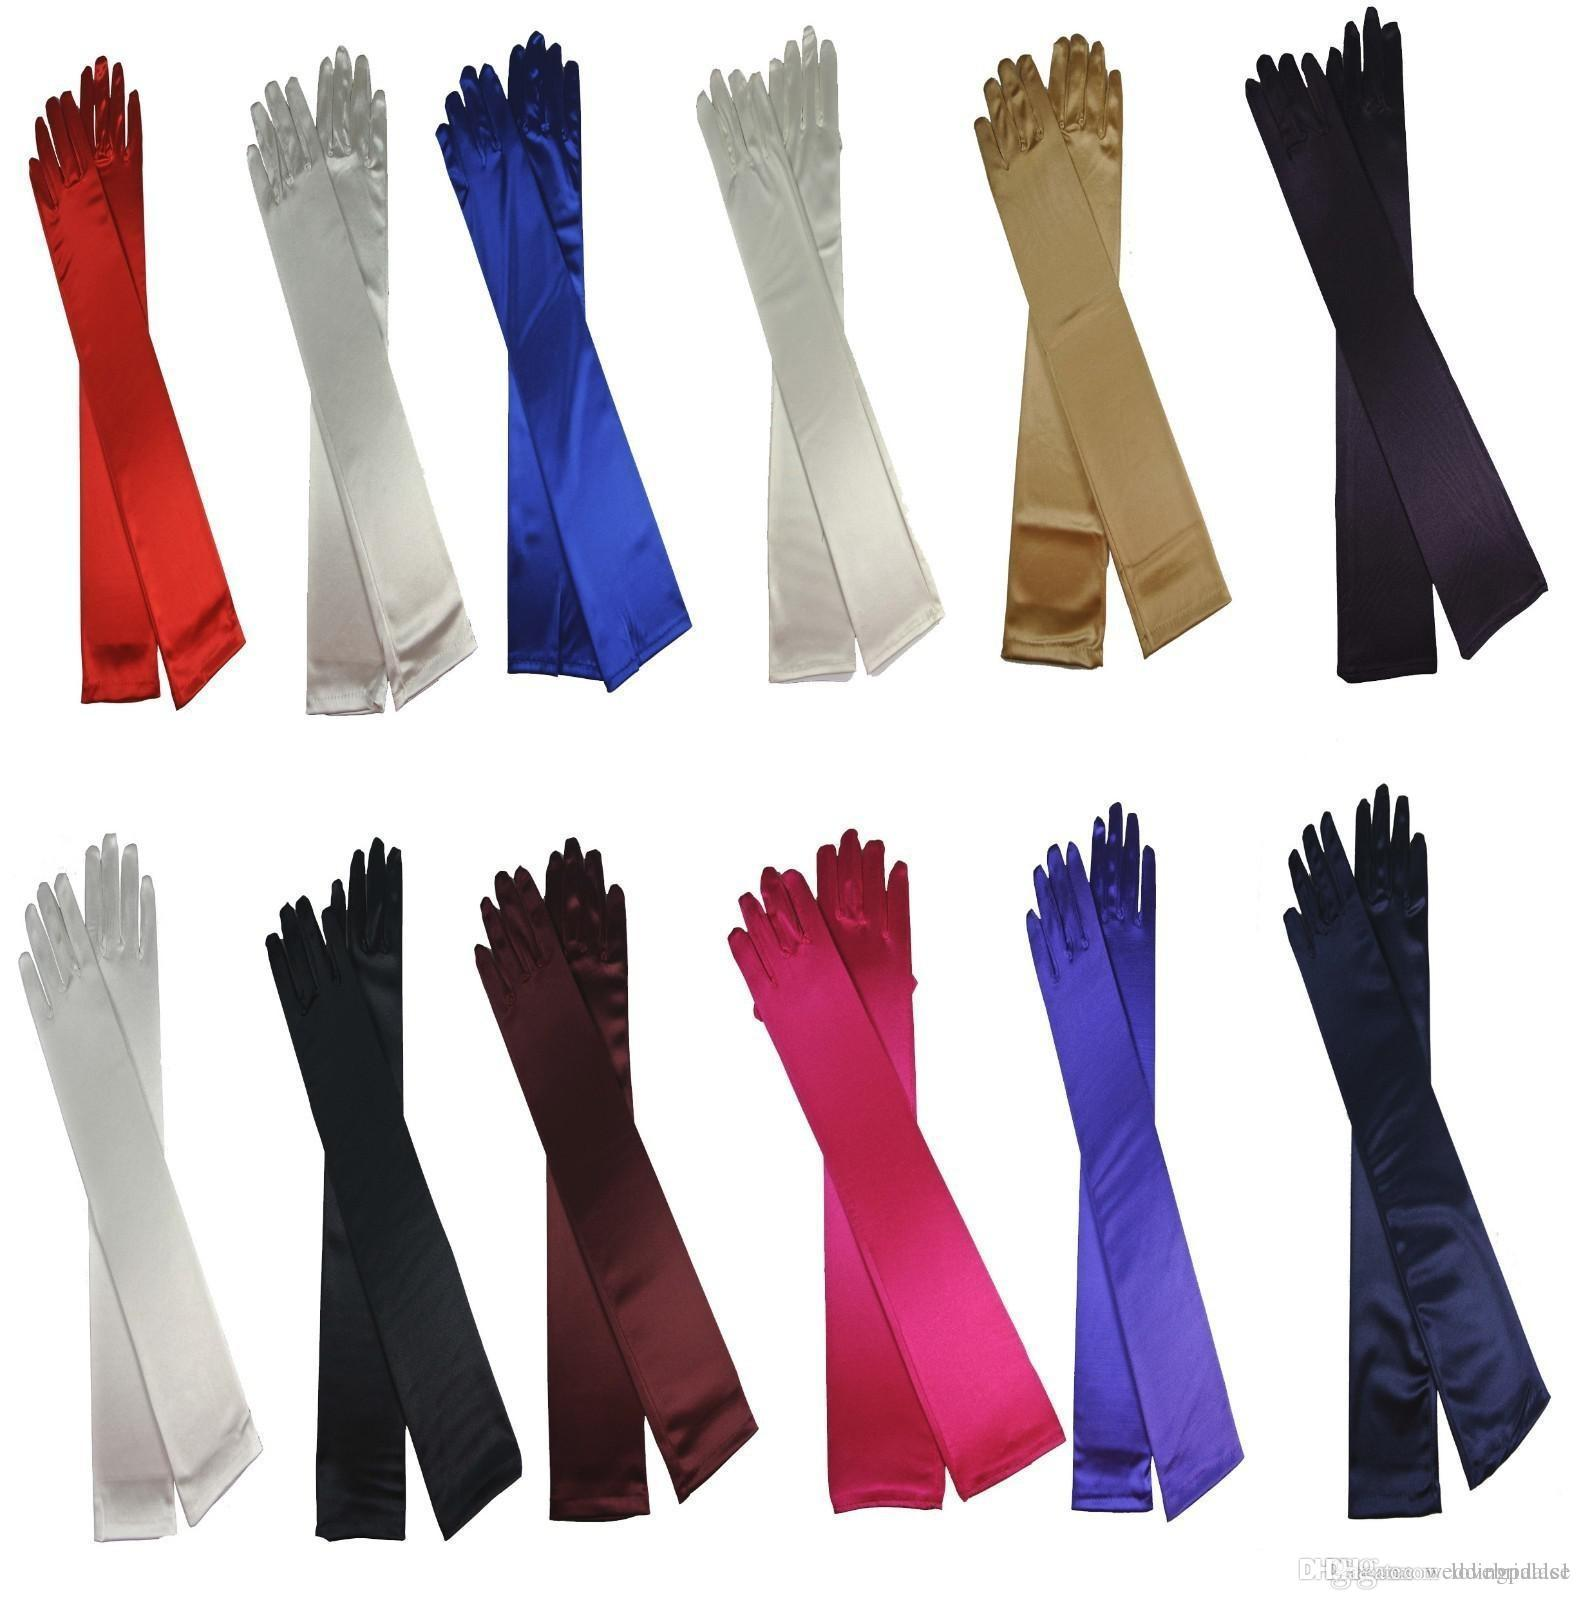 In Stock Free Shipping Colorful above elbow length Bridal Gloves Full Finger Opera Length Satin Long Wedding Gloves